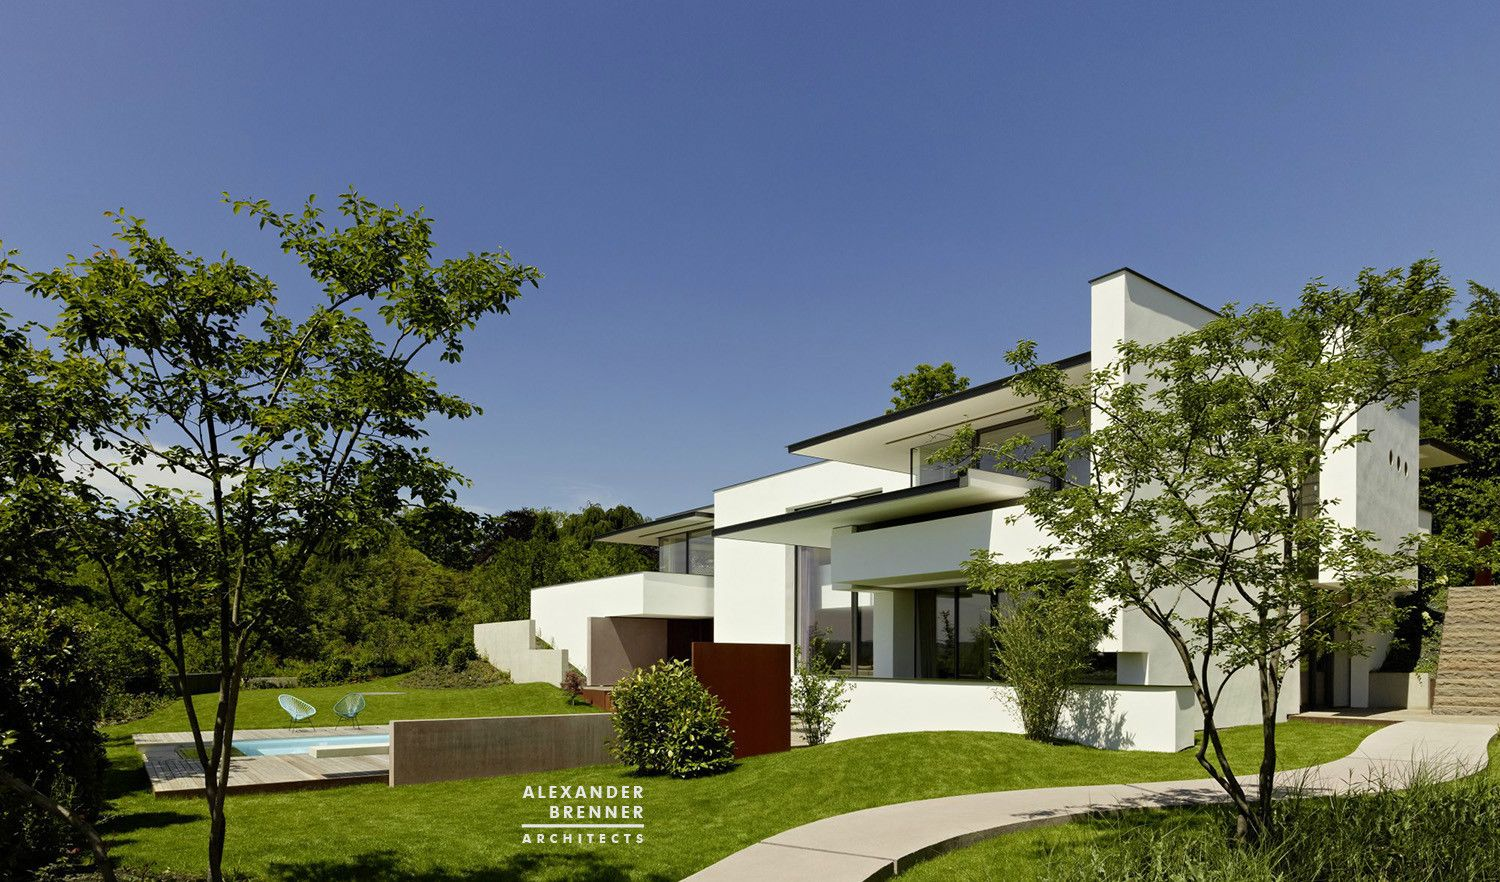 cool Vista House | Alexander Brenner Architects Check more at http://www.arch2o.com/vista-house-alexander-brenner-architects/